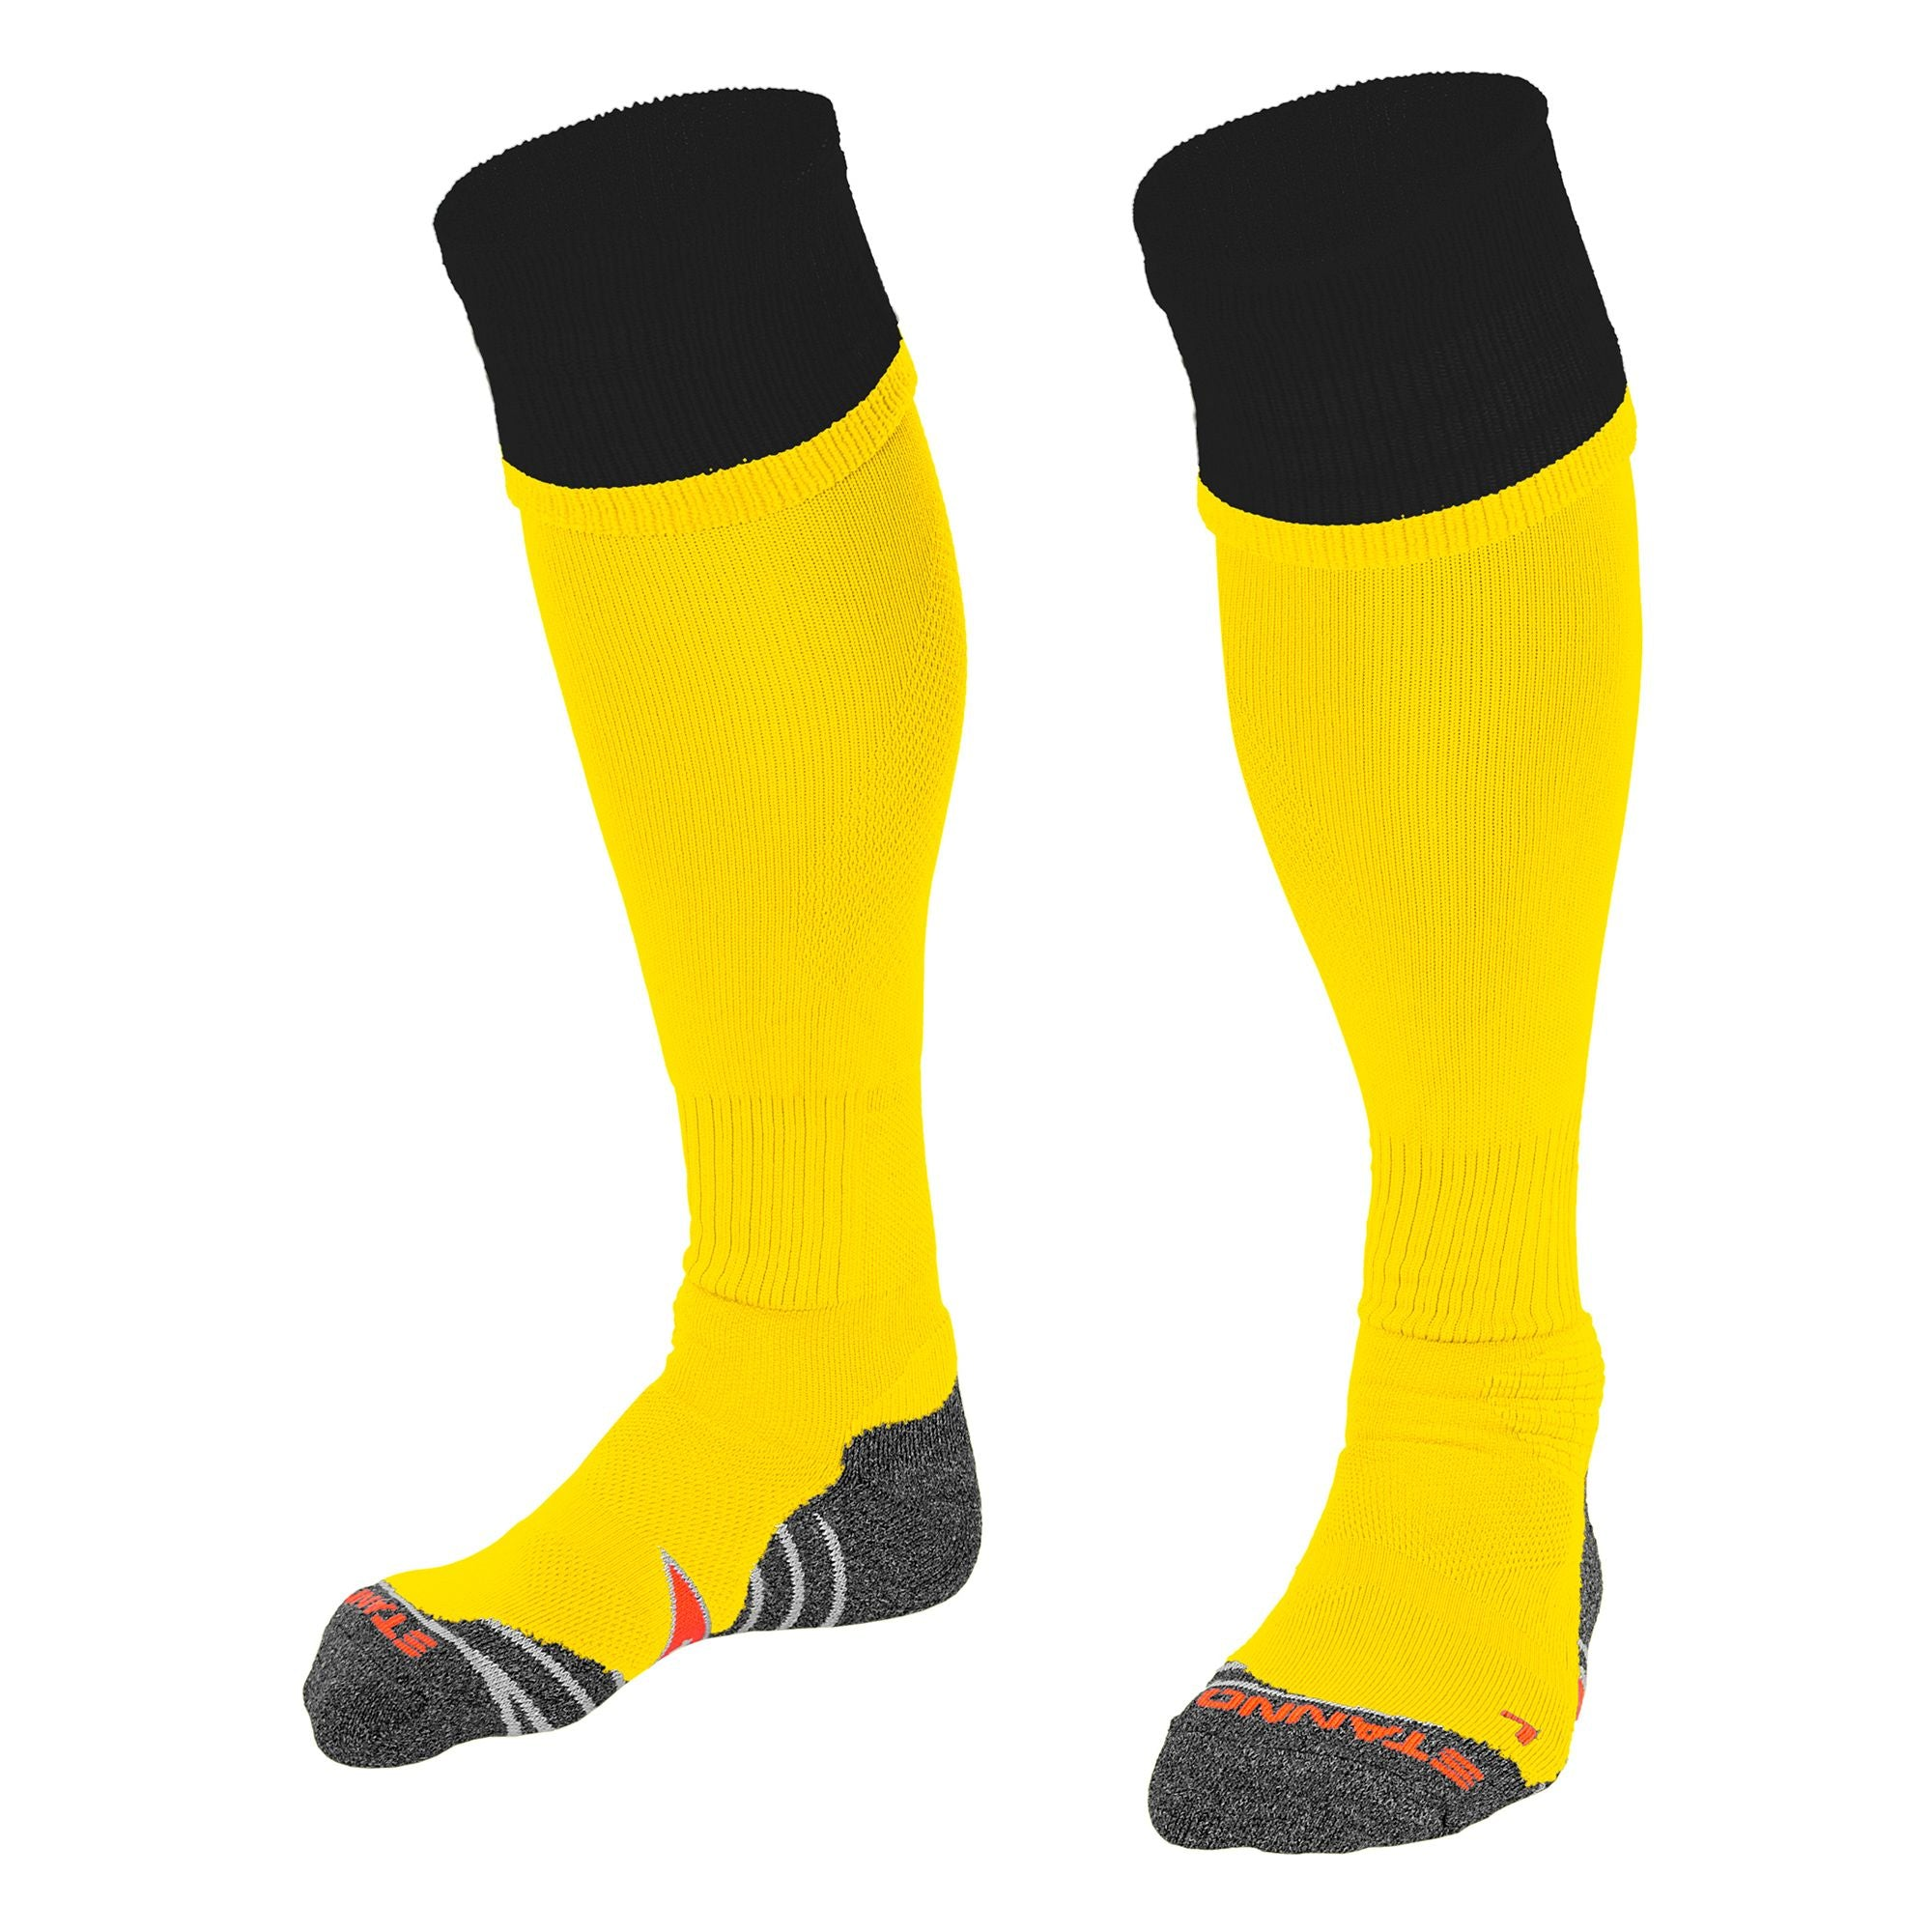 Stanno Combi Sock in yellow with black contrast tops